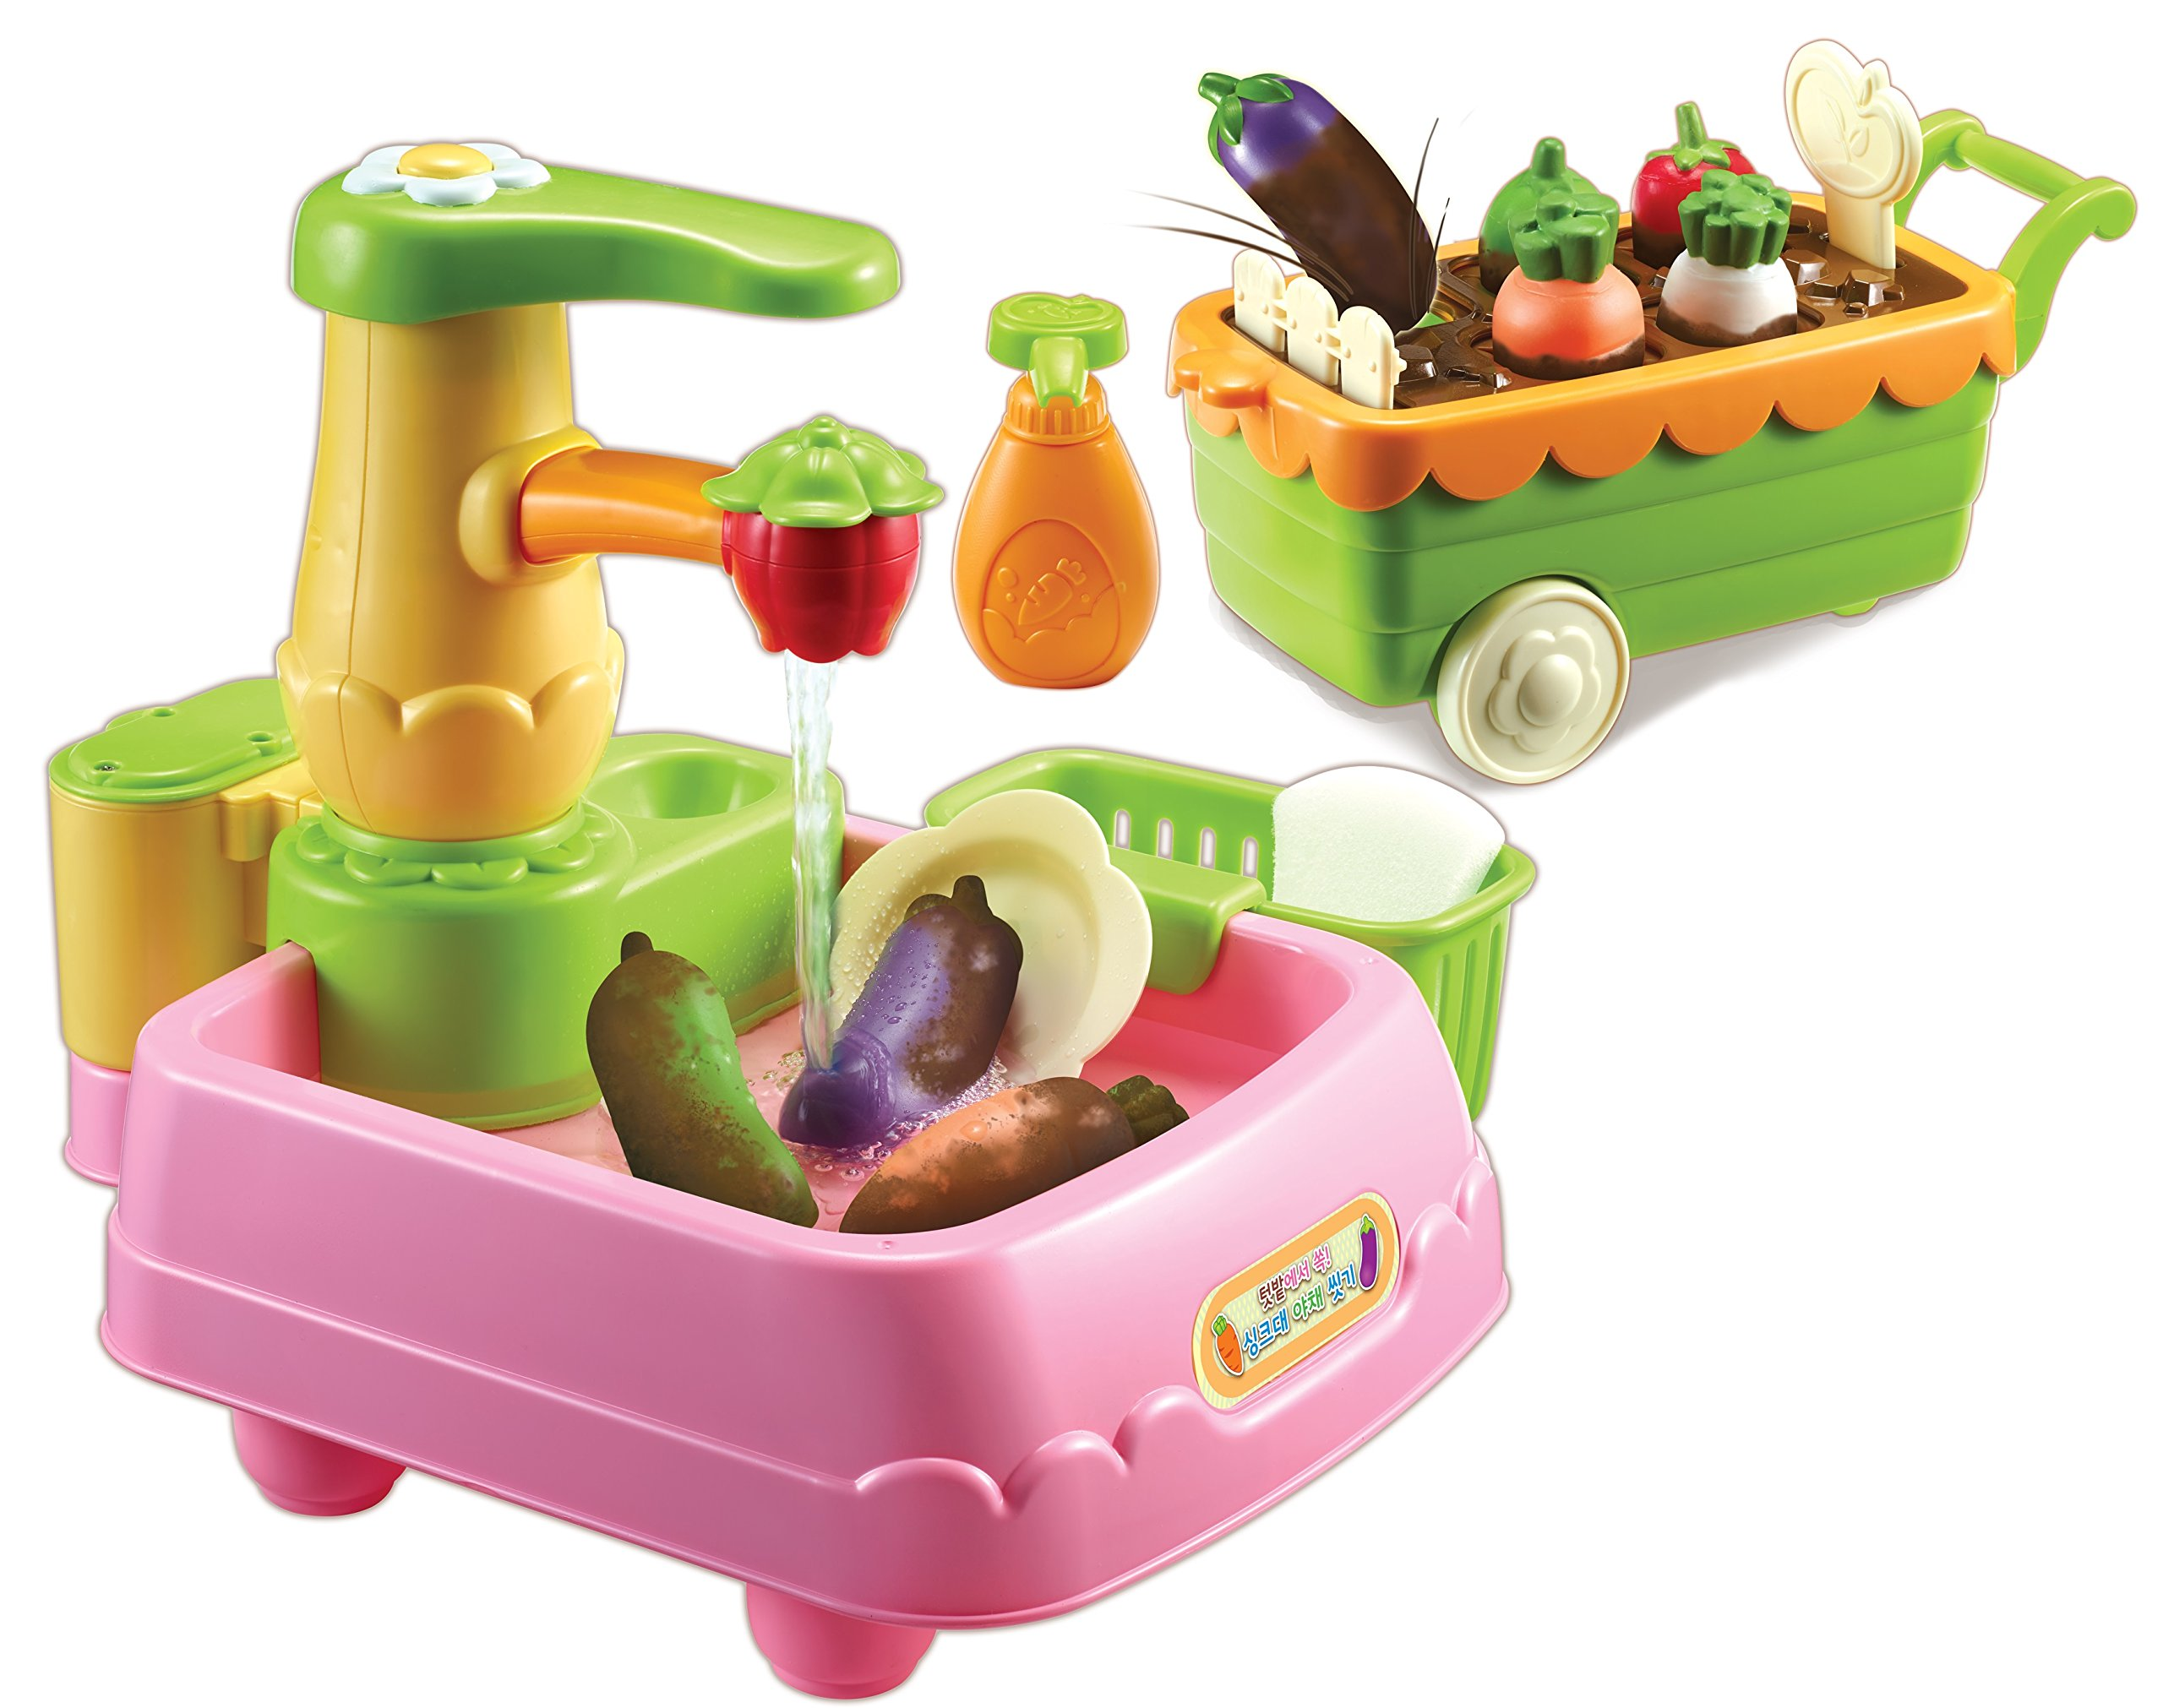 KONGSUNI Series Veggie Wash Vegetable Playset Cooking Kitchen Play Set for Kids Early Age Development Educational Roleplay Food Assortment Set Chef playset Toy Sink